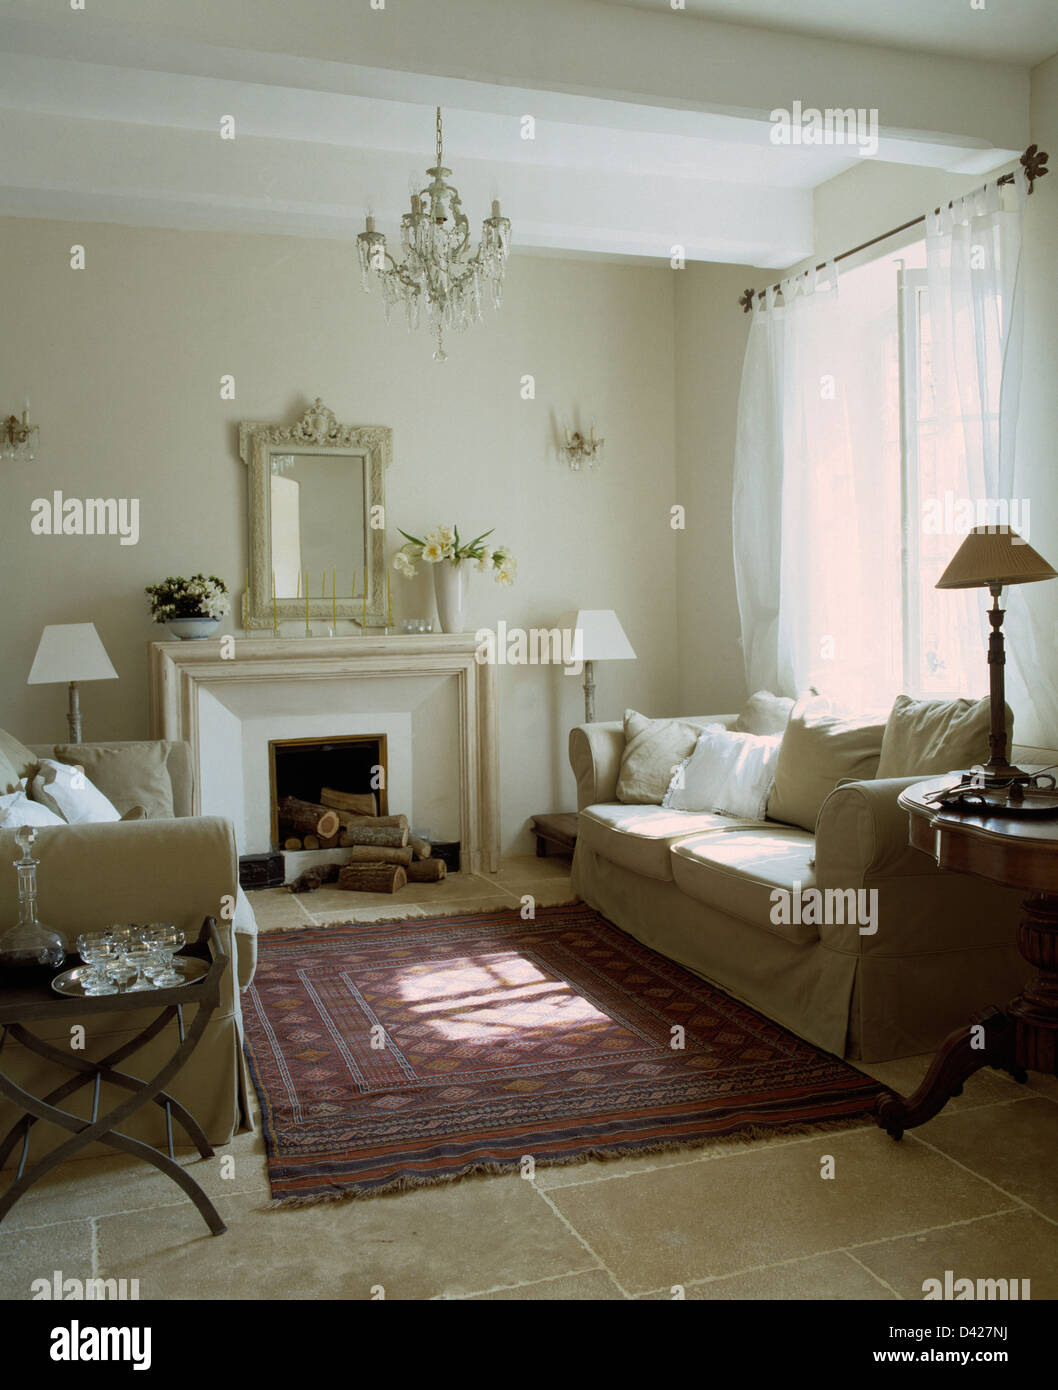 Cream sofas on either side of fireplace in French country